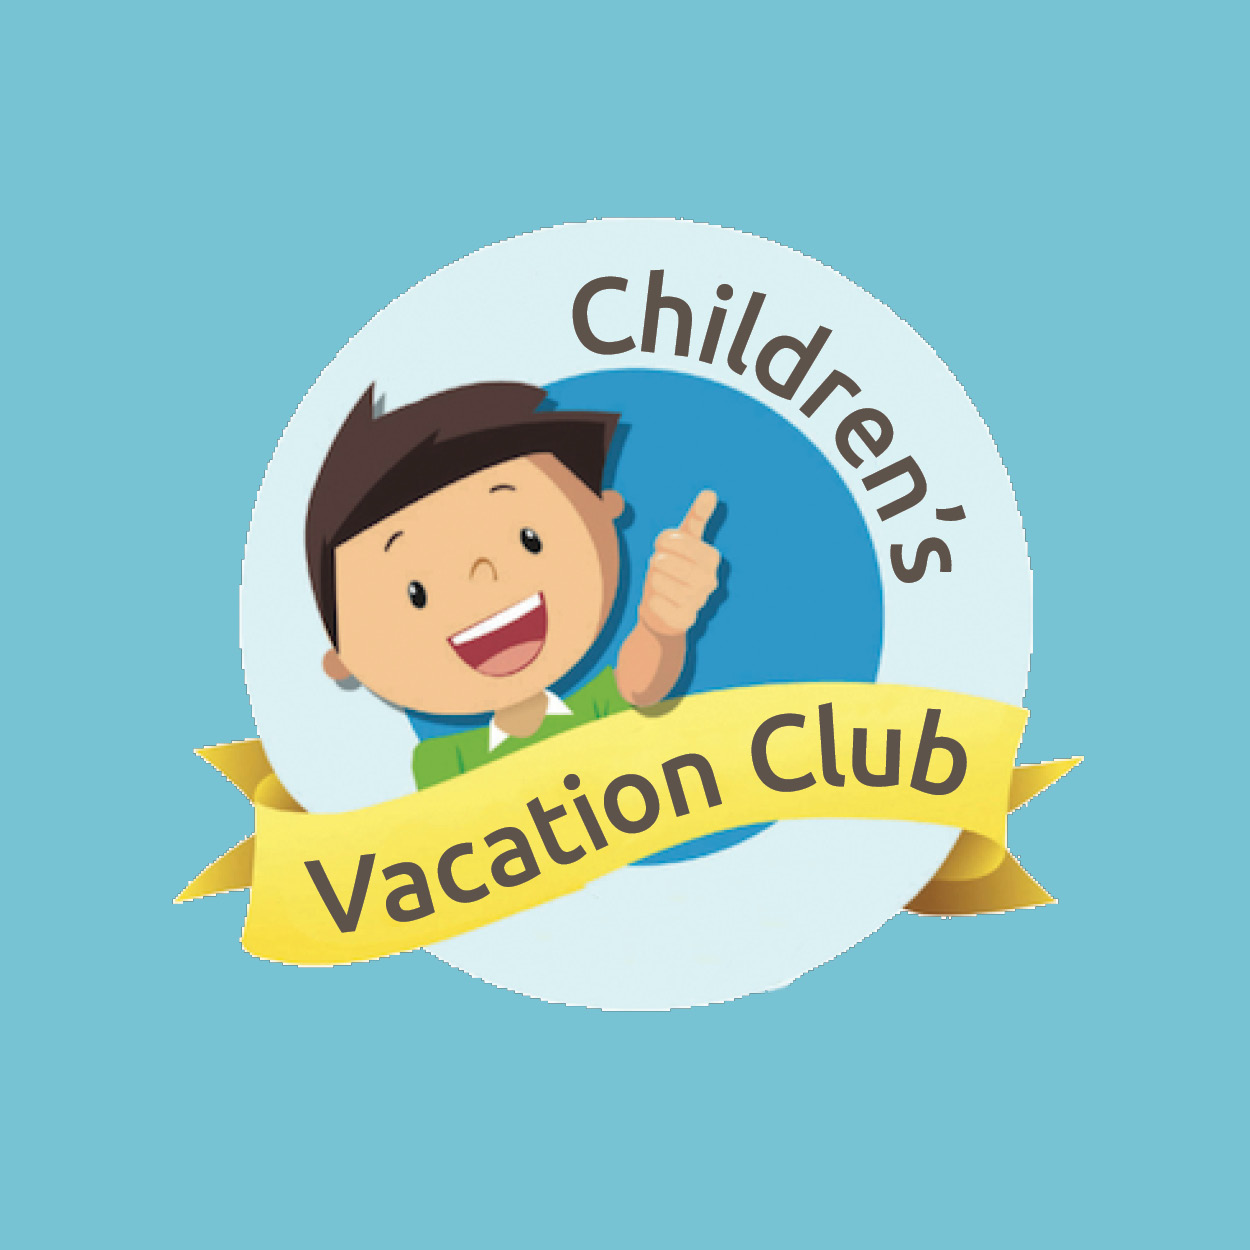 Children's Vacation Club